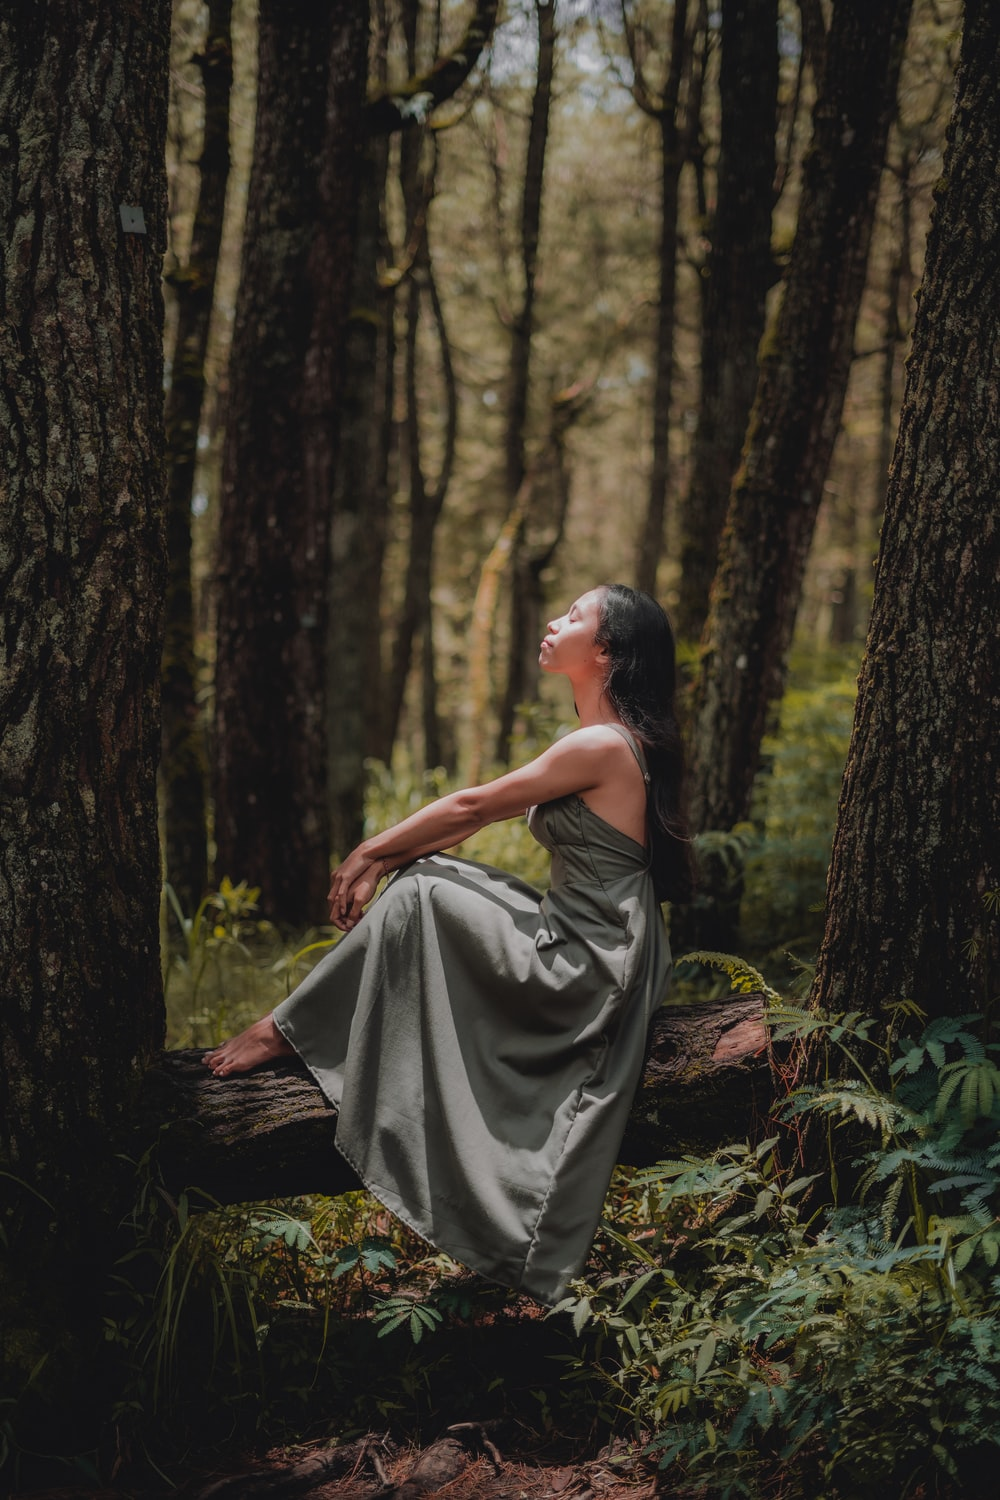 woman in black dress sitting on ground surrounded by trees